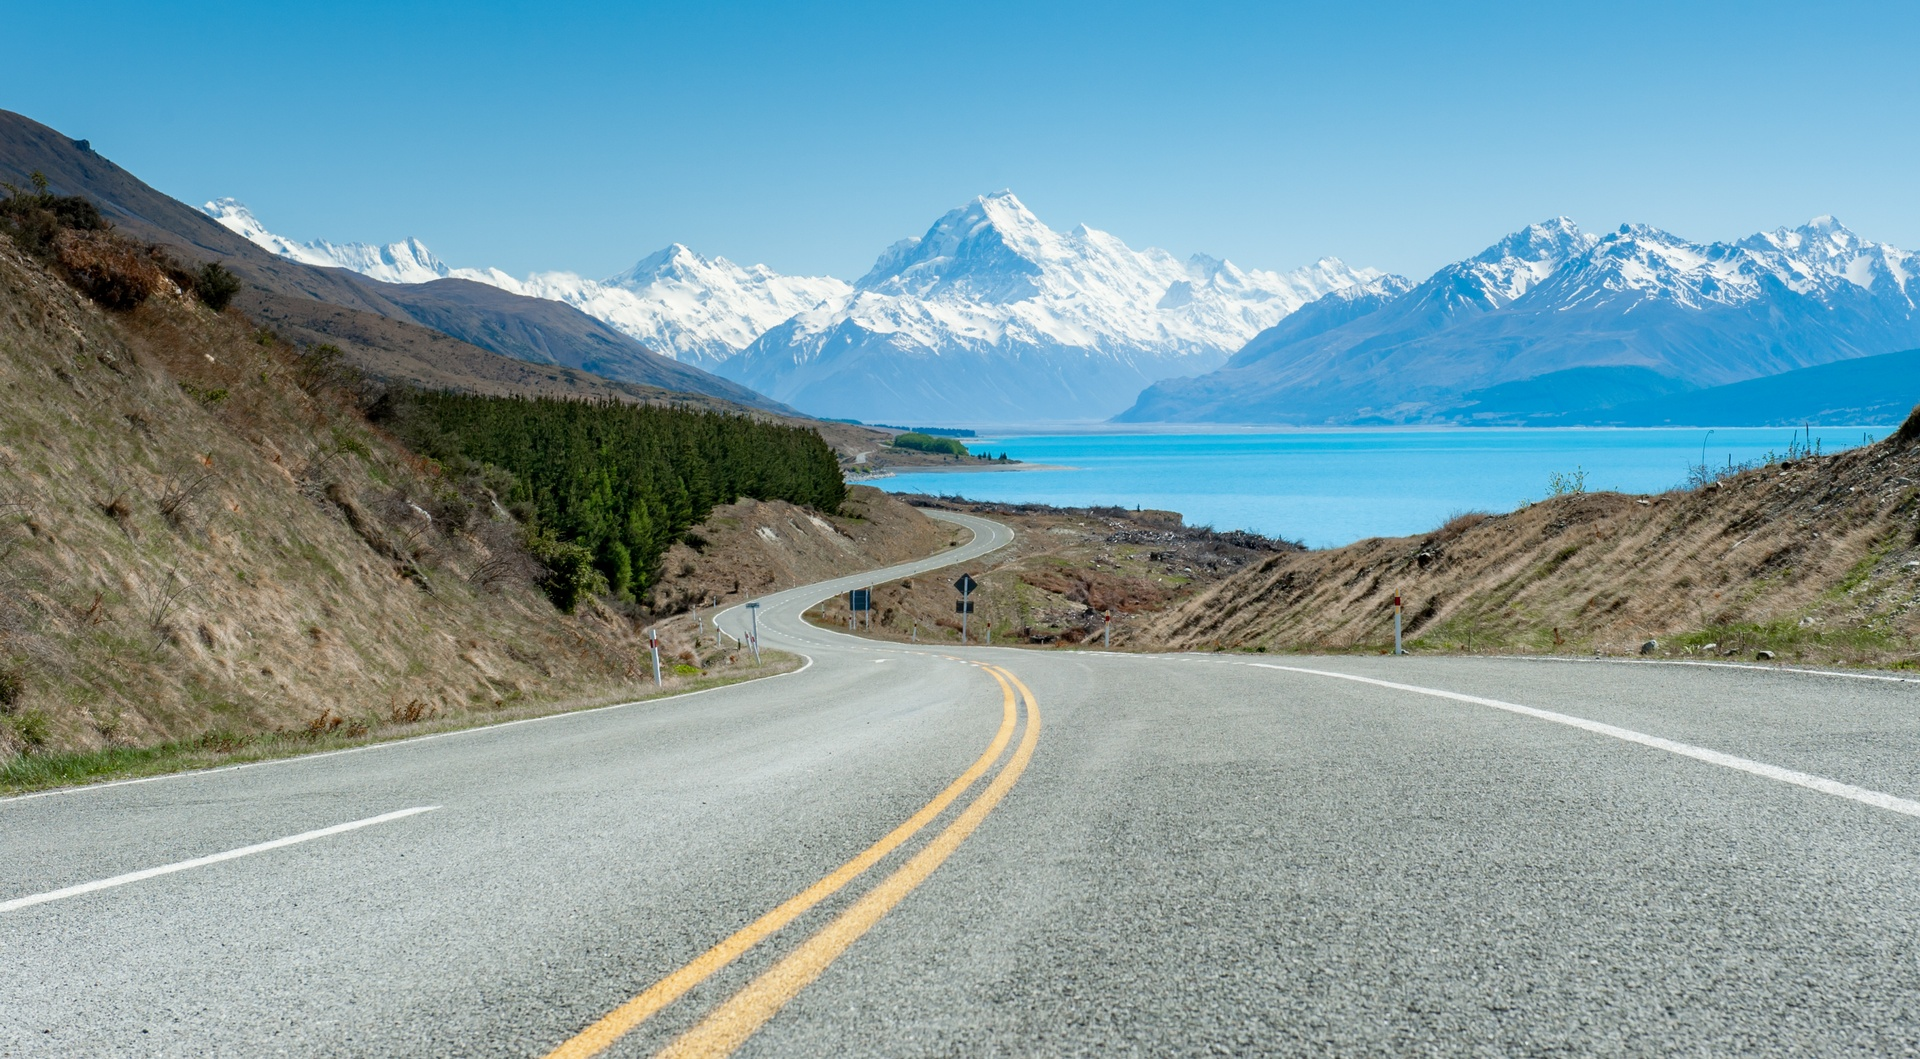 Mt Cook, New Zealand (image care of Tourism New Zealand).